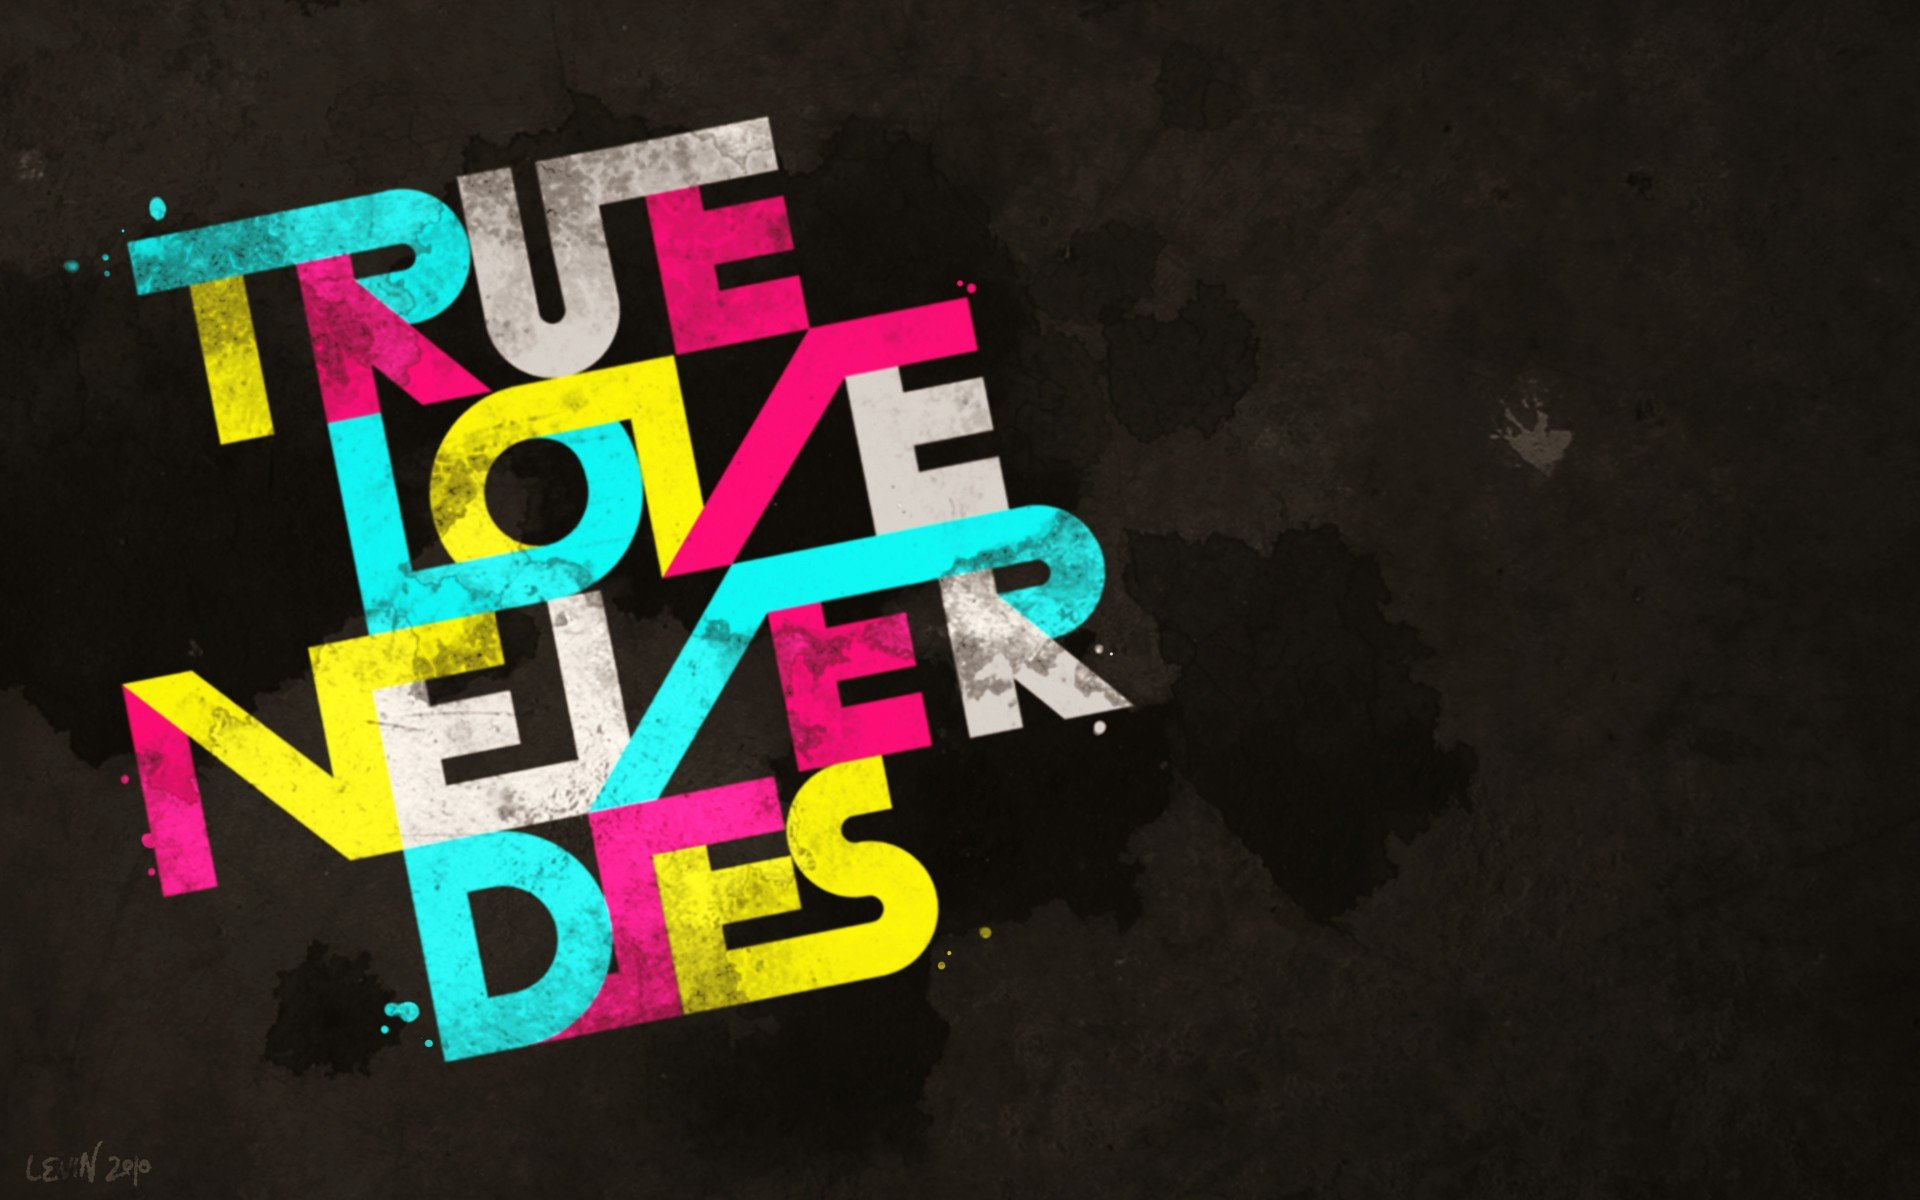 True Love Quotes Wallpapers HD Wallpaper of Love   hdwallpaper2013com 1920x1200